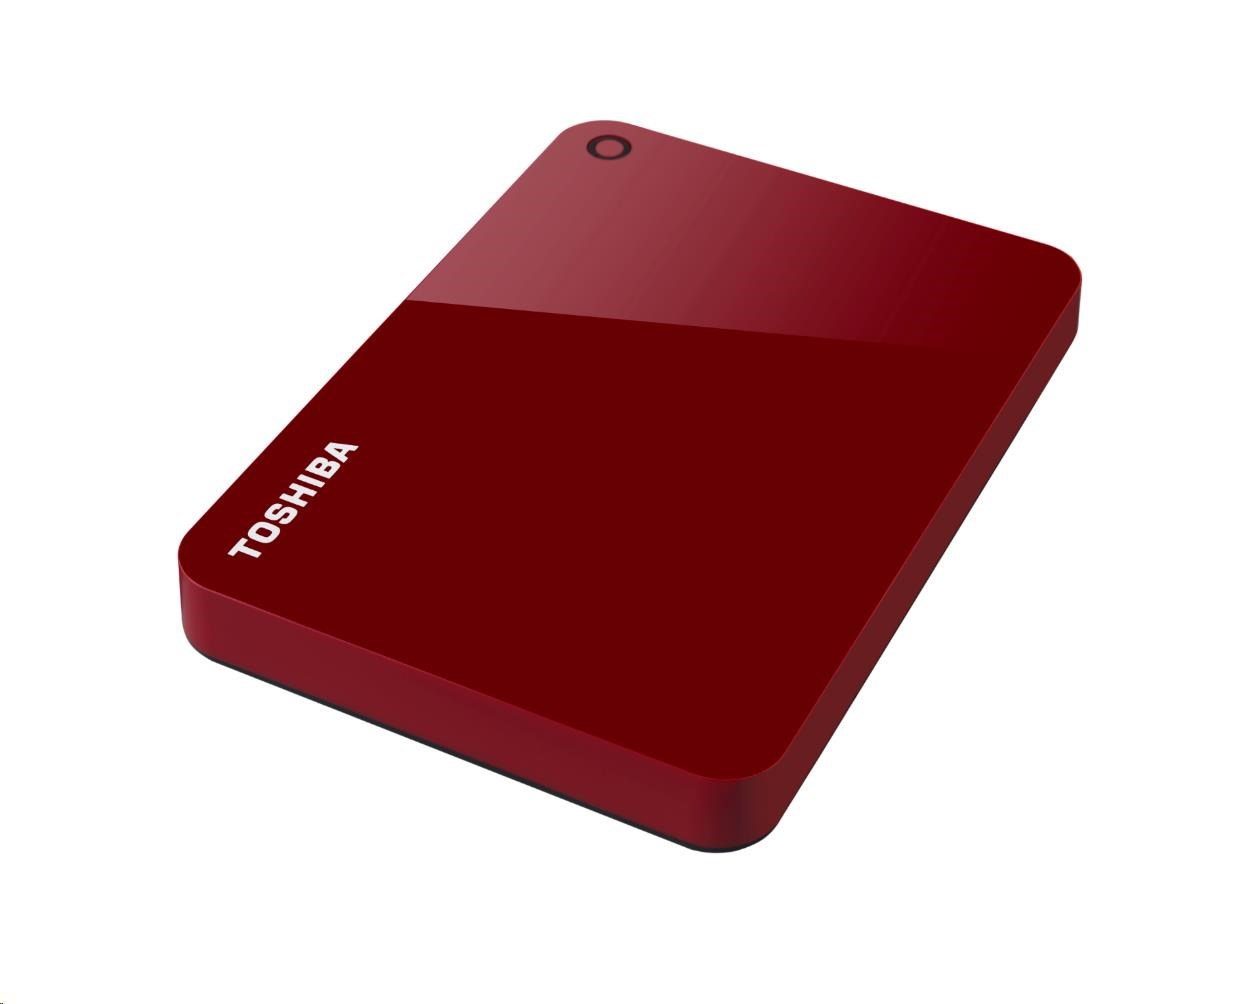 "TOSHIBA HDD CANVIO ADVANCE 1TB, 2,5"", USB 3.0, červený"